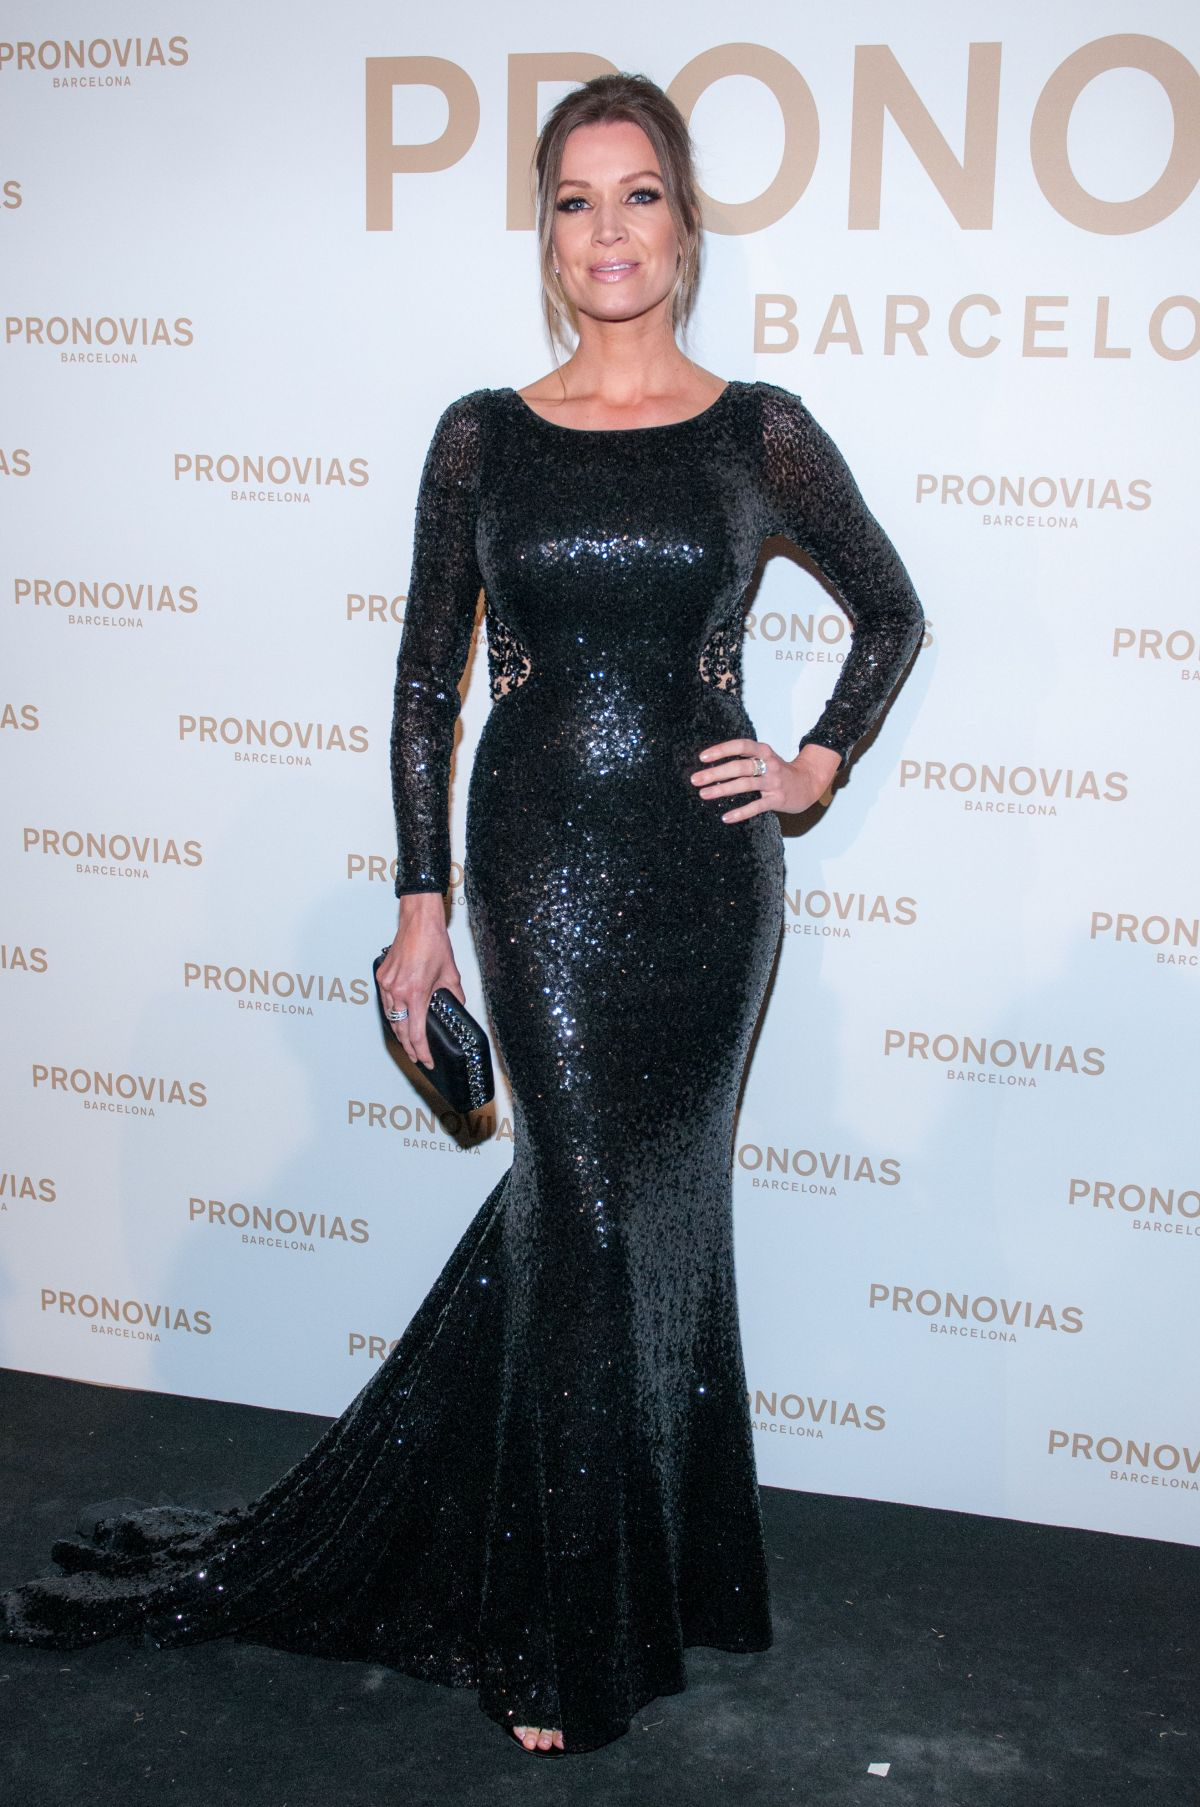 NICOLE KIMPEL at Barcelona Photocall at Pronovias Catwalk Show 04/28/2017